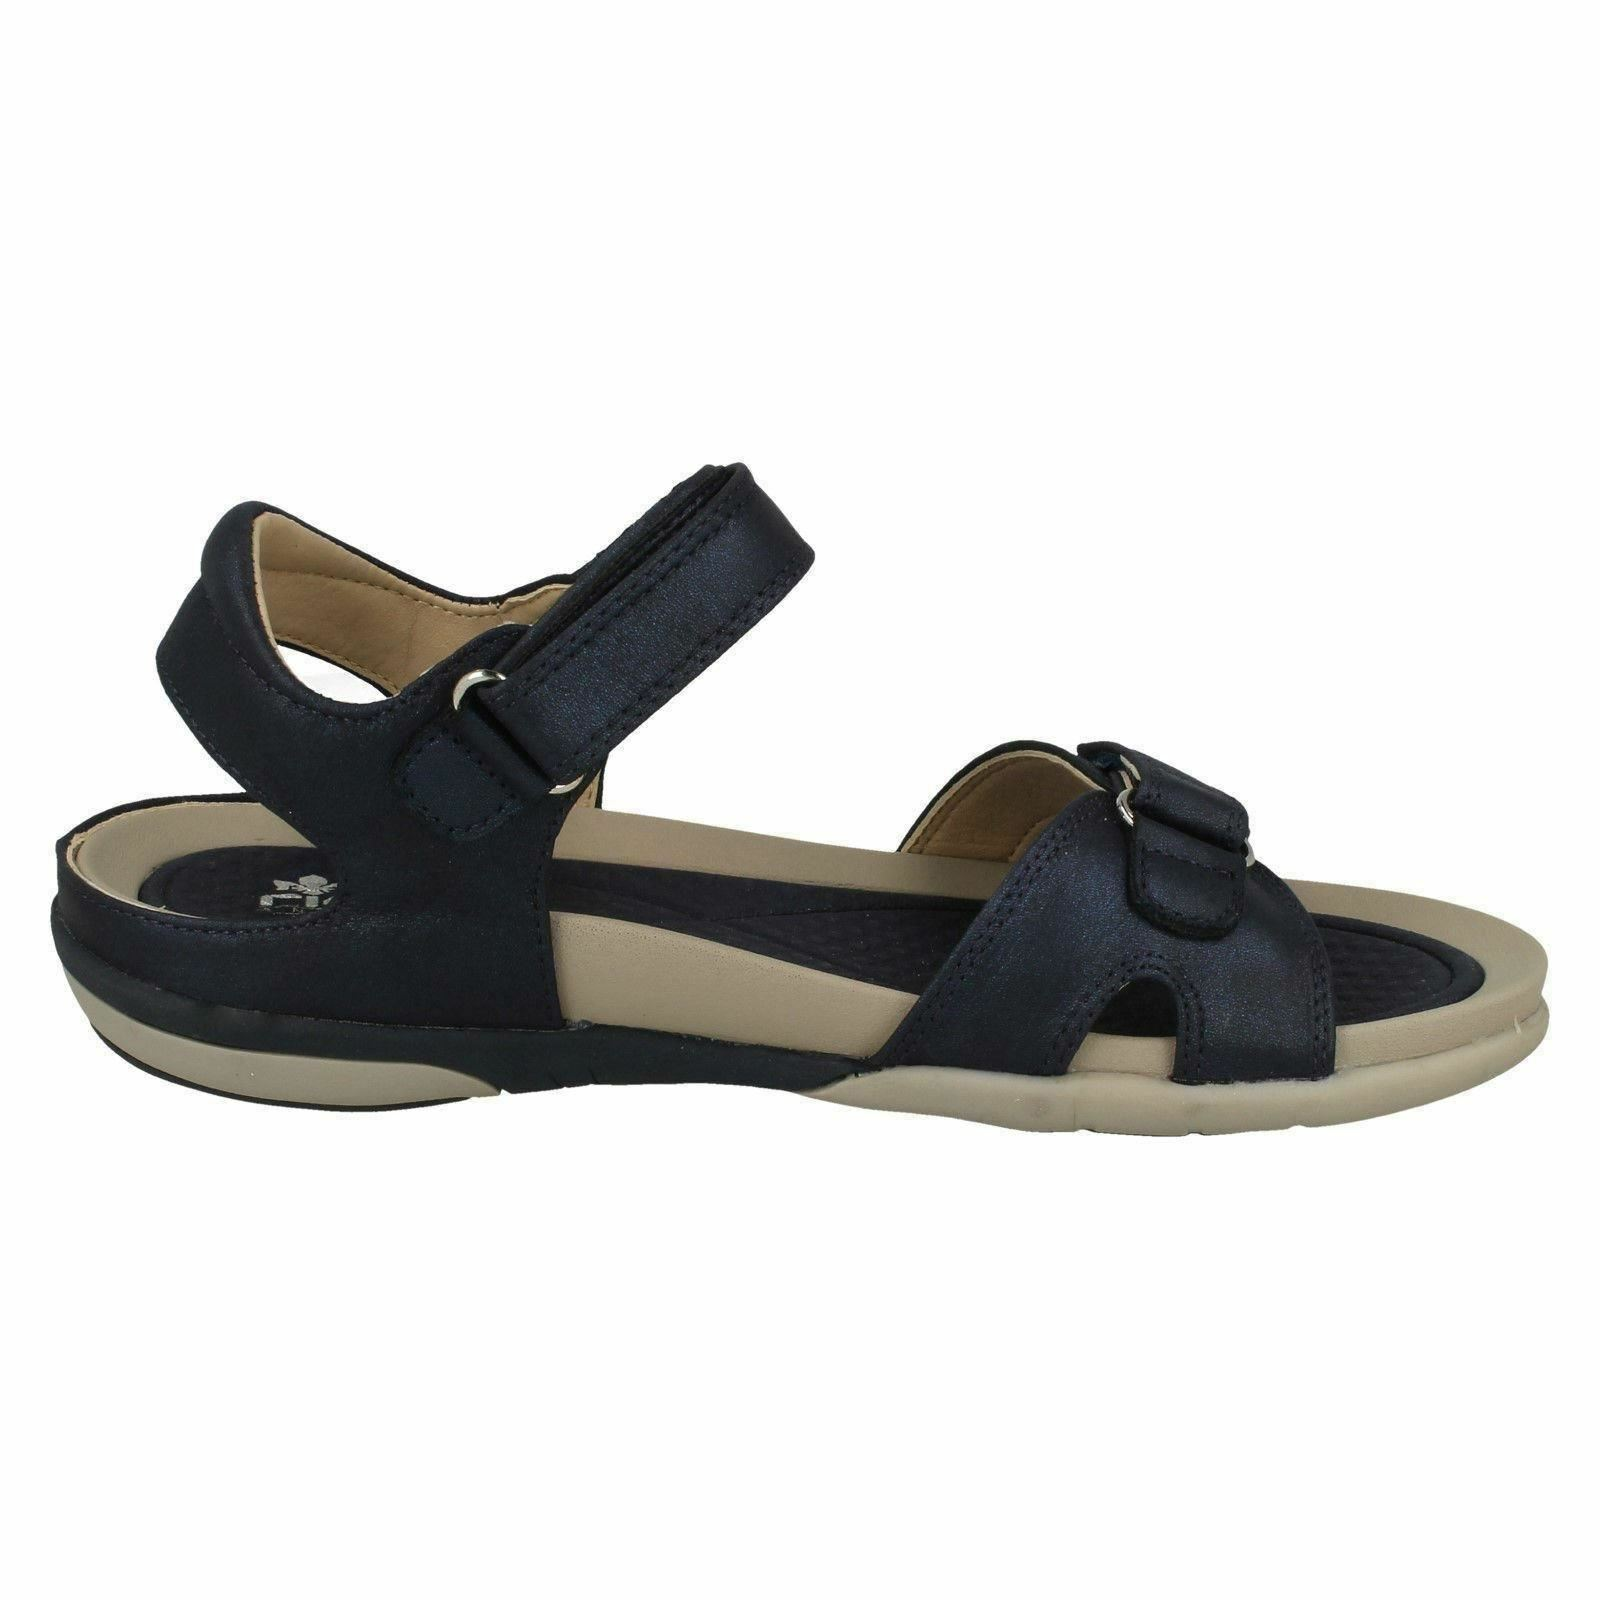 V9462  TOE RIEKER WOMENS LADIES OPEN TOE  CASUAL SUMMER SANDALS BEACH SHOES SIZES 40bad7